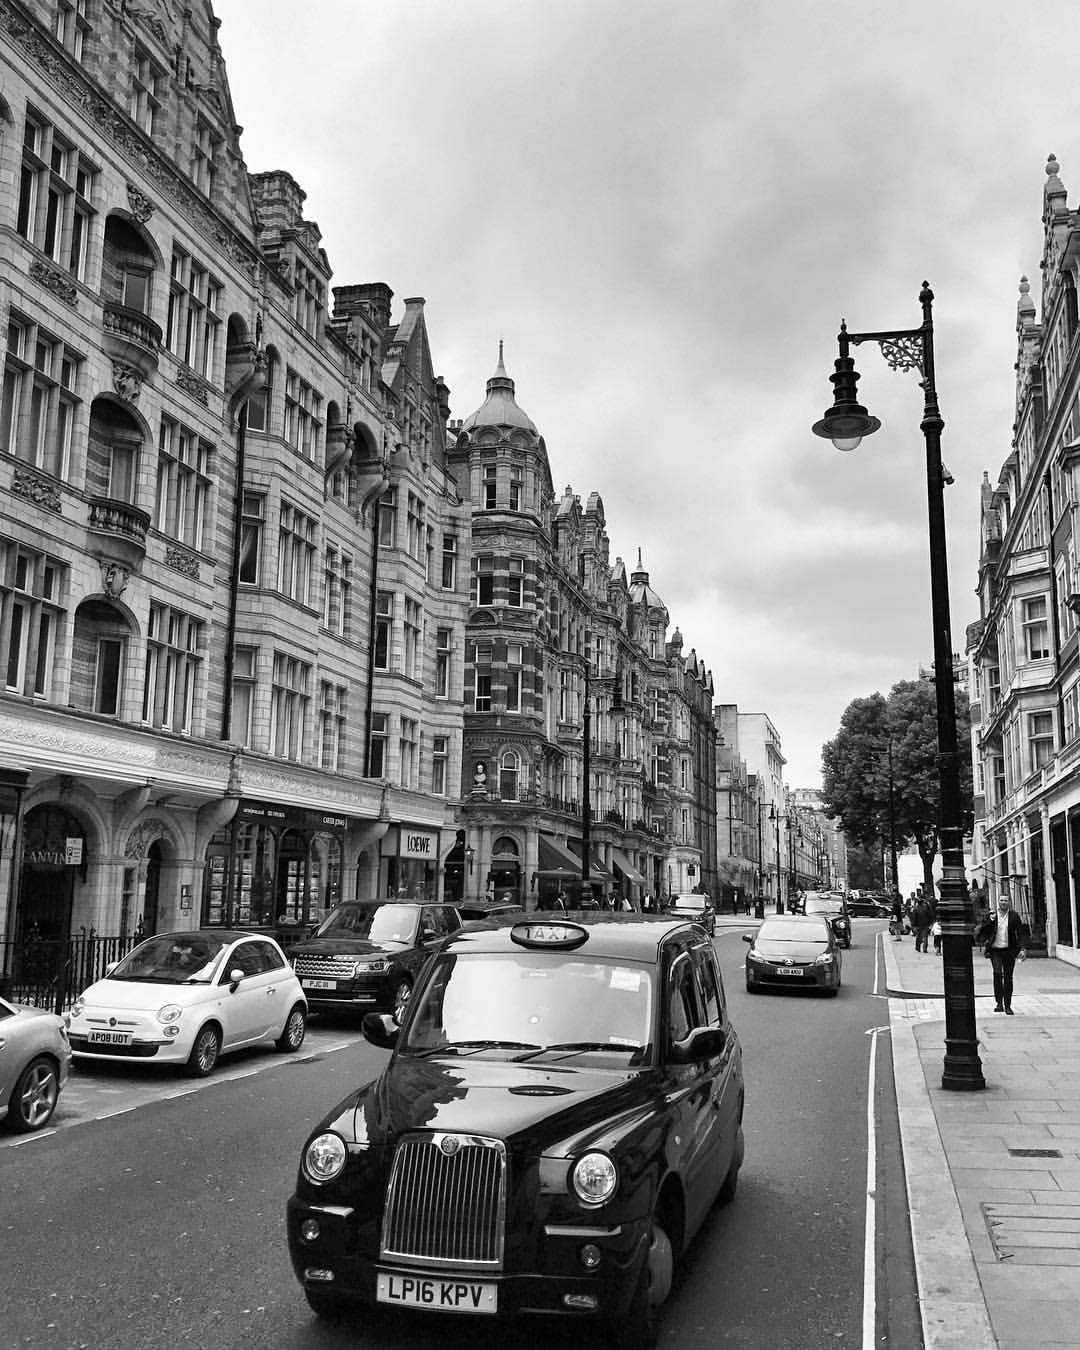 A gloomy day on Mount Street with cars passing by English baroque architectural buildings